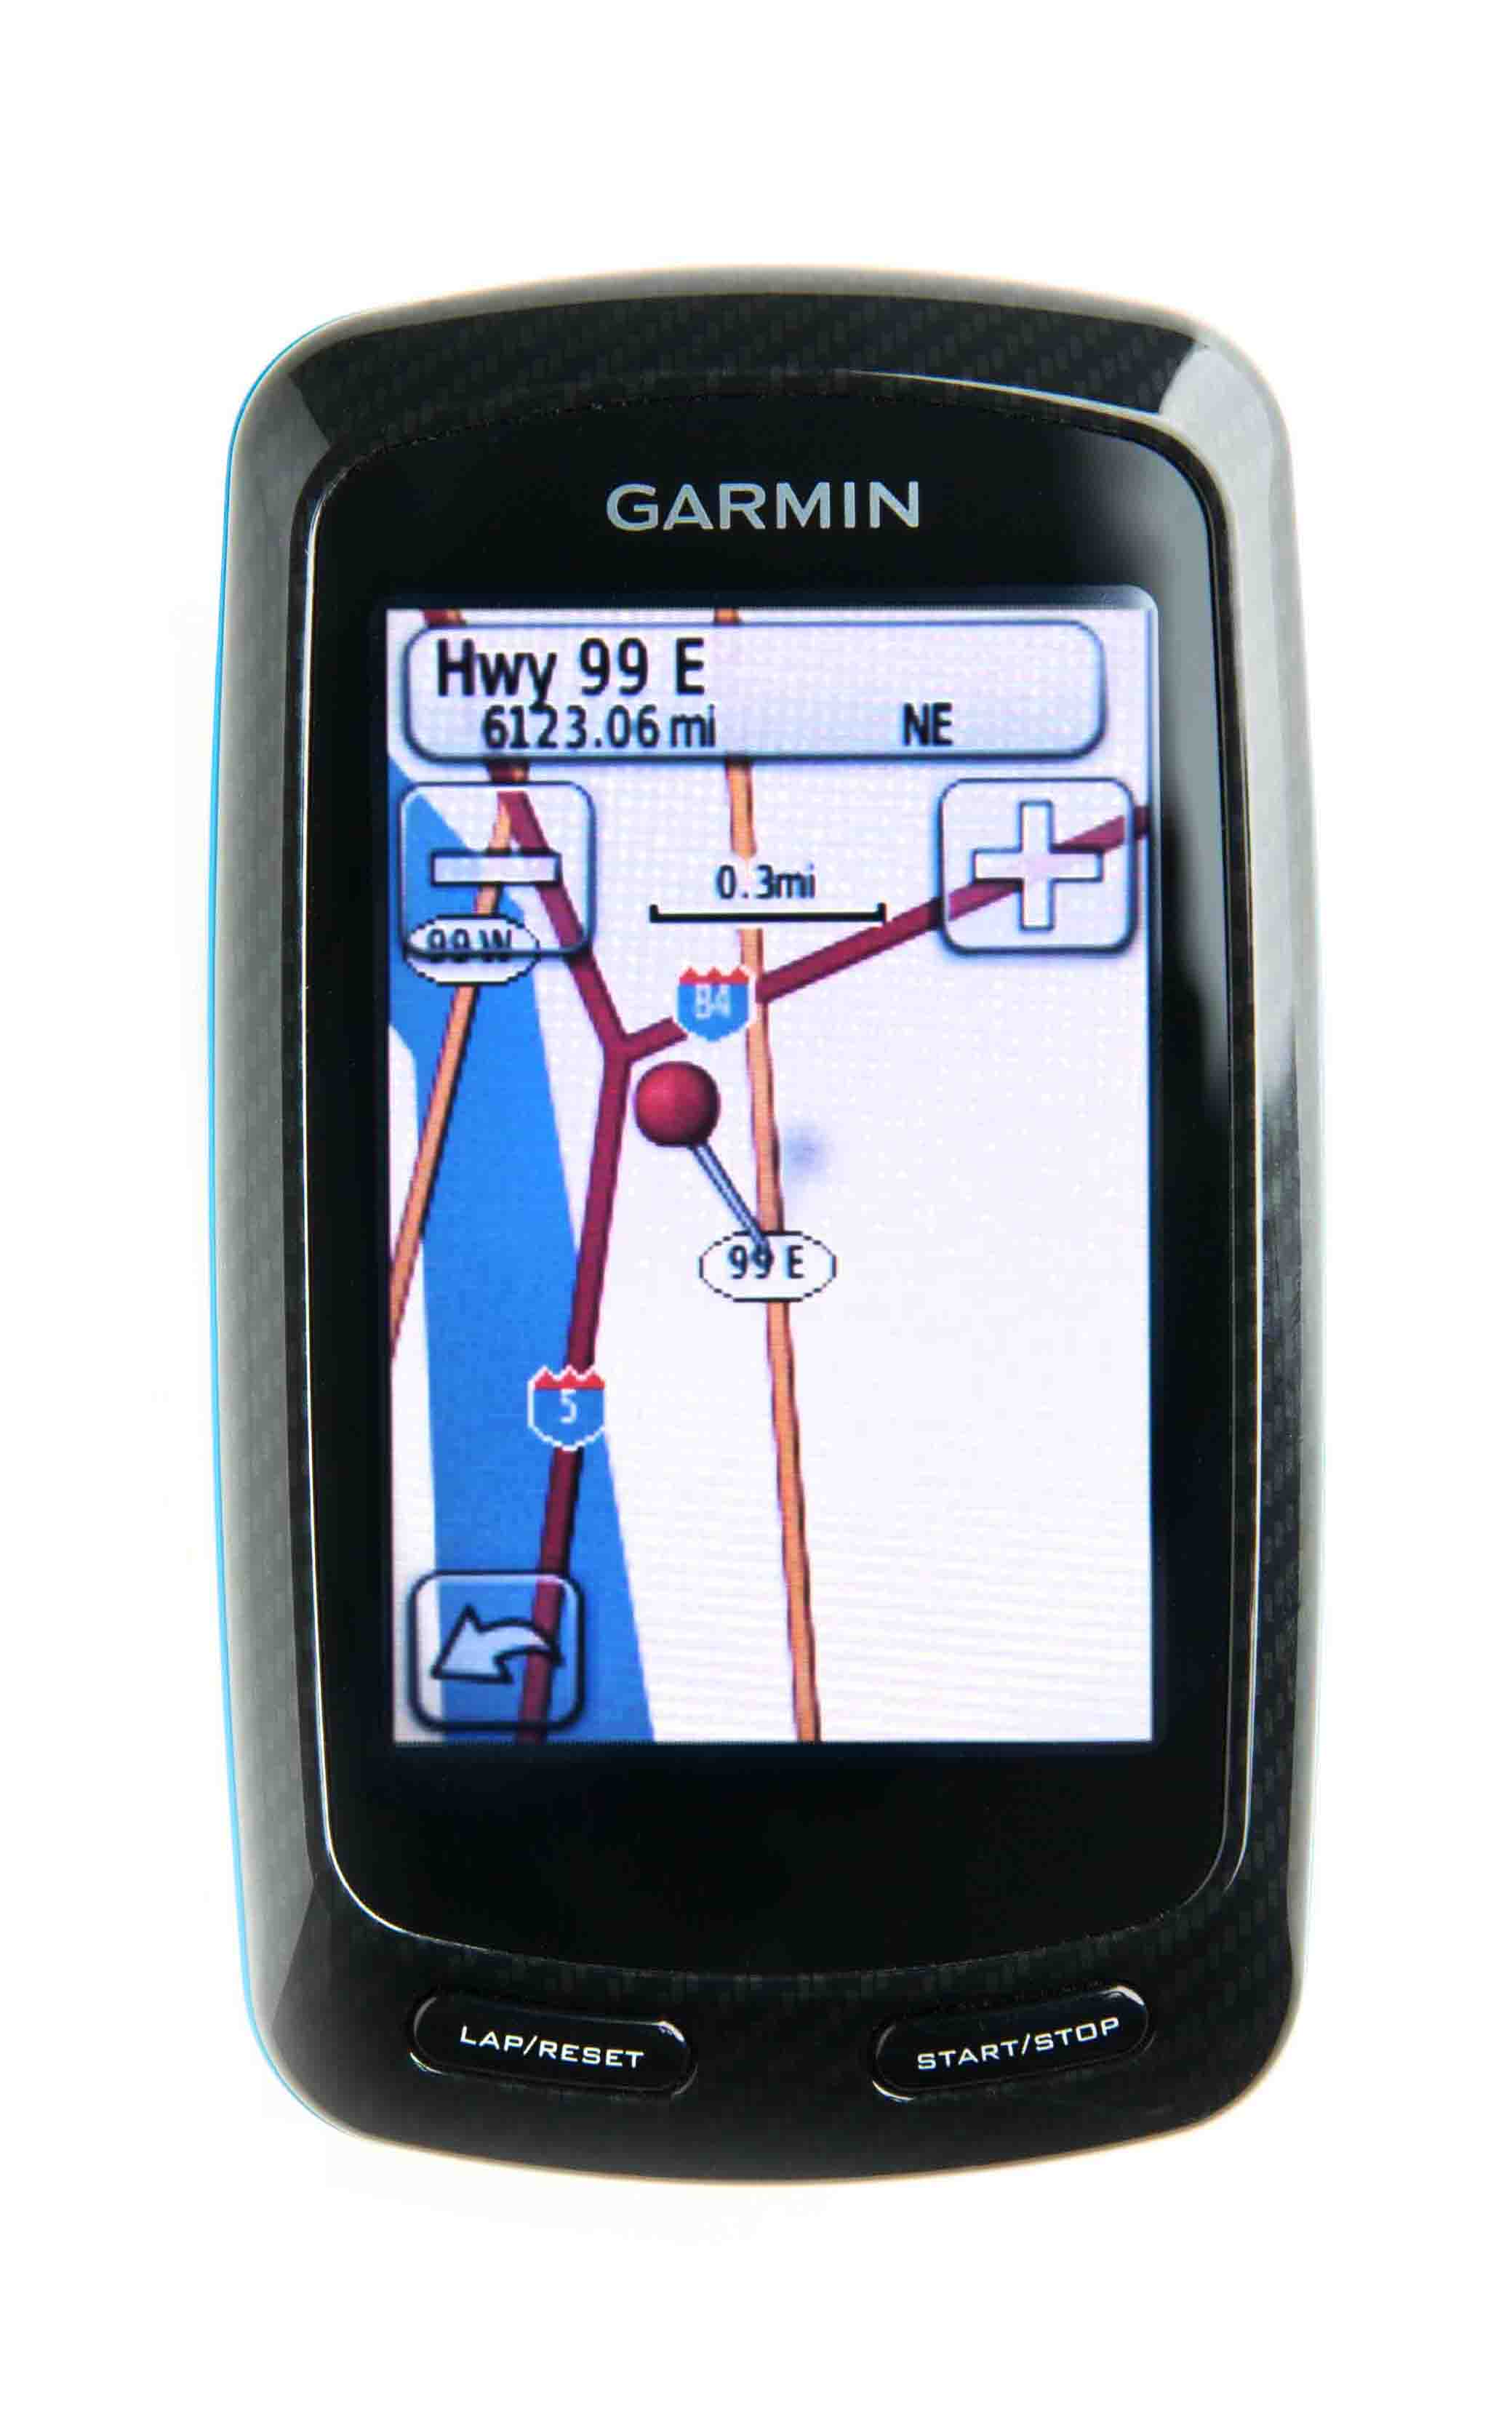 Garmin Edge 800 | Ride With GPS Help